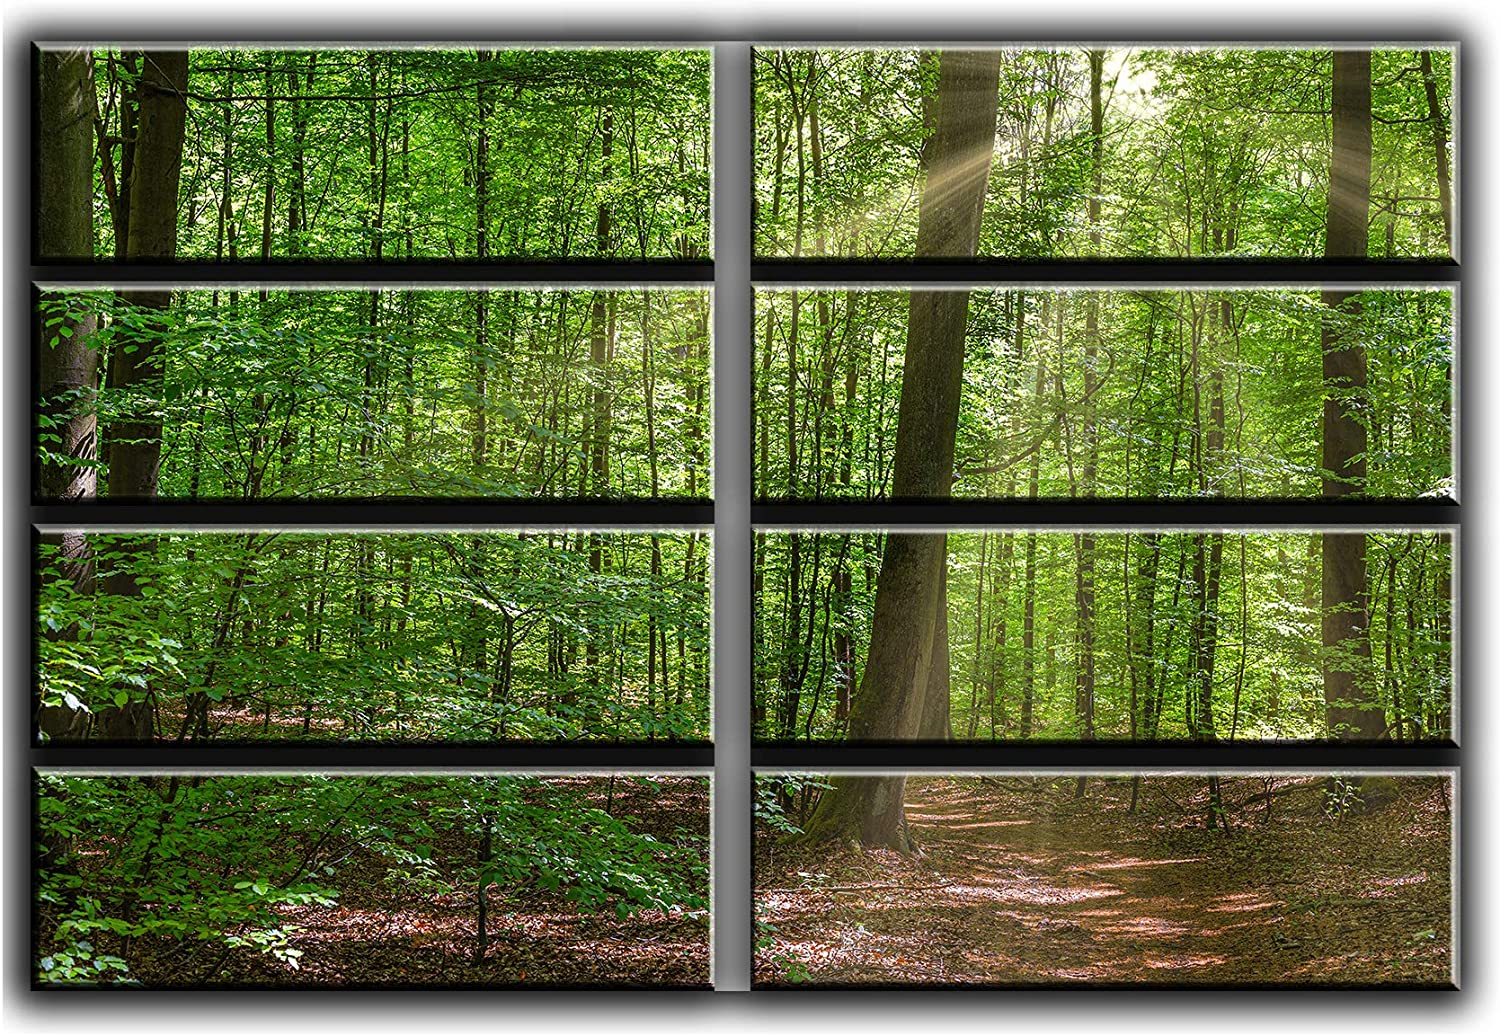 8 Huge Piece Sunny Day in Forest Wall Art Decor Picture Painting Poster Print on Canvas Panels Pieces - Nature Theme Wall Decoration Set - Spring Time Hiking Wall Picture for Living Room Bedroom